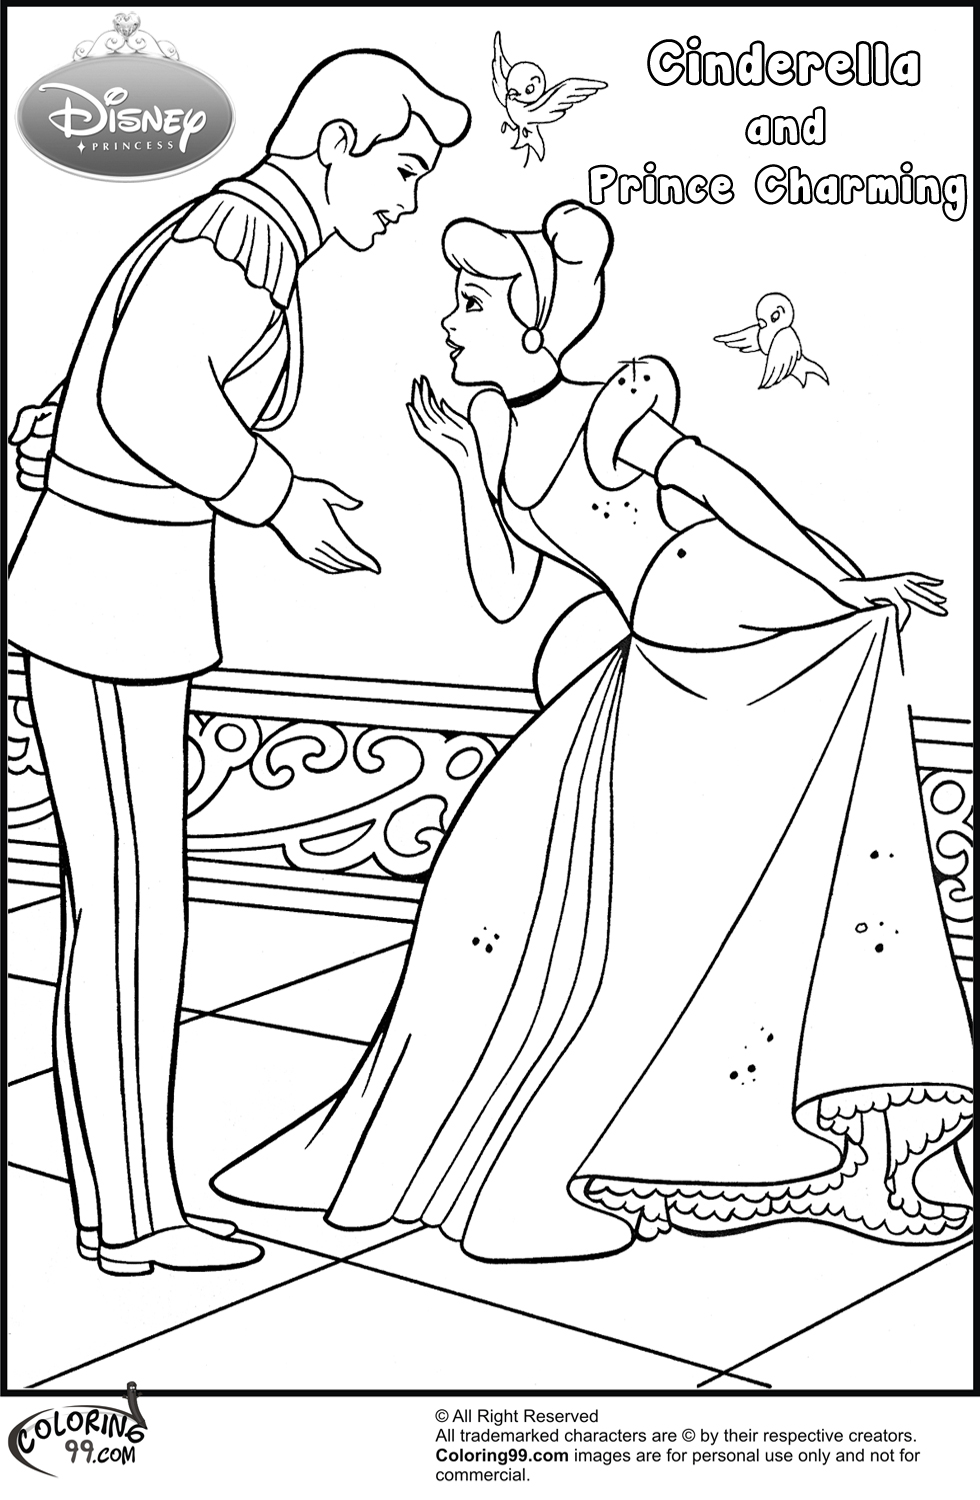 Fans Request - Cinderella and Prince Charming Coloring ...